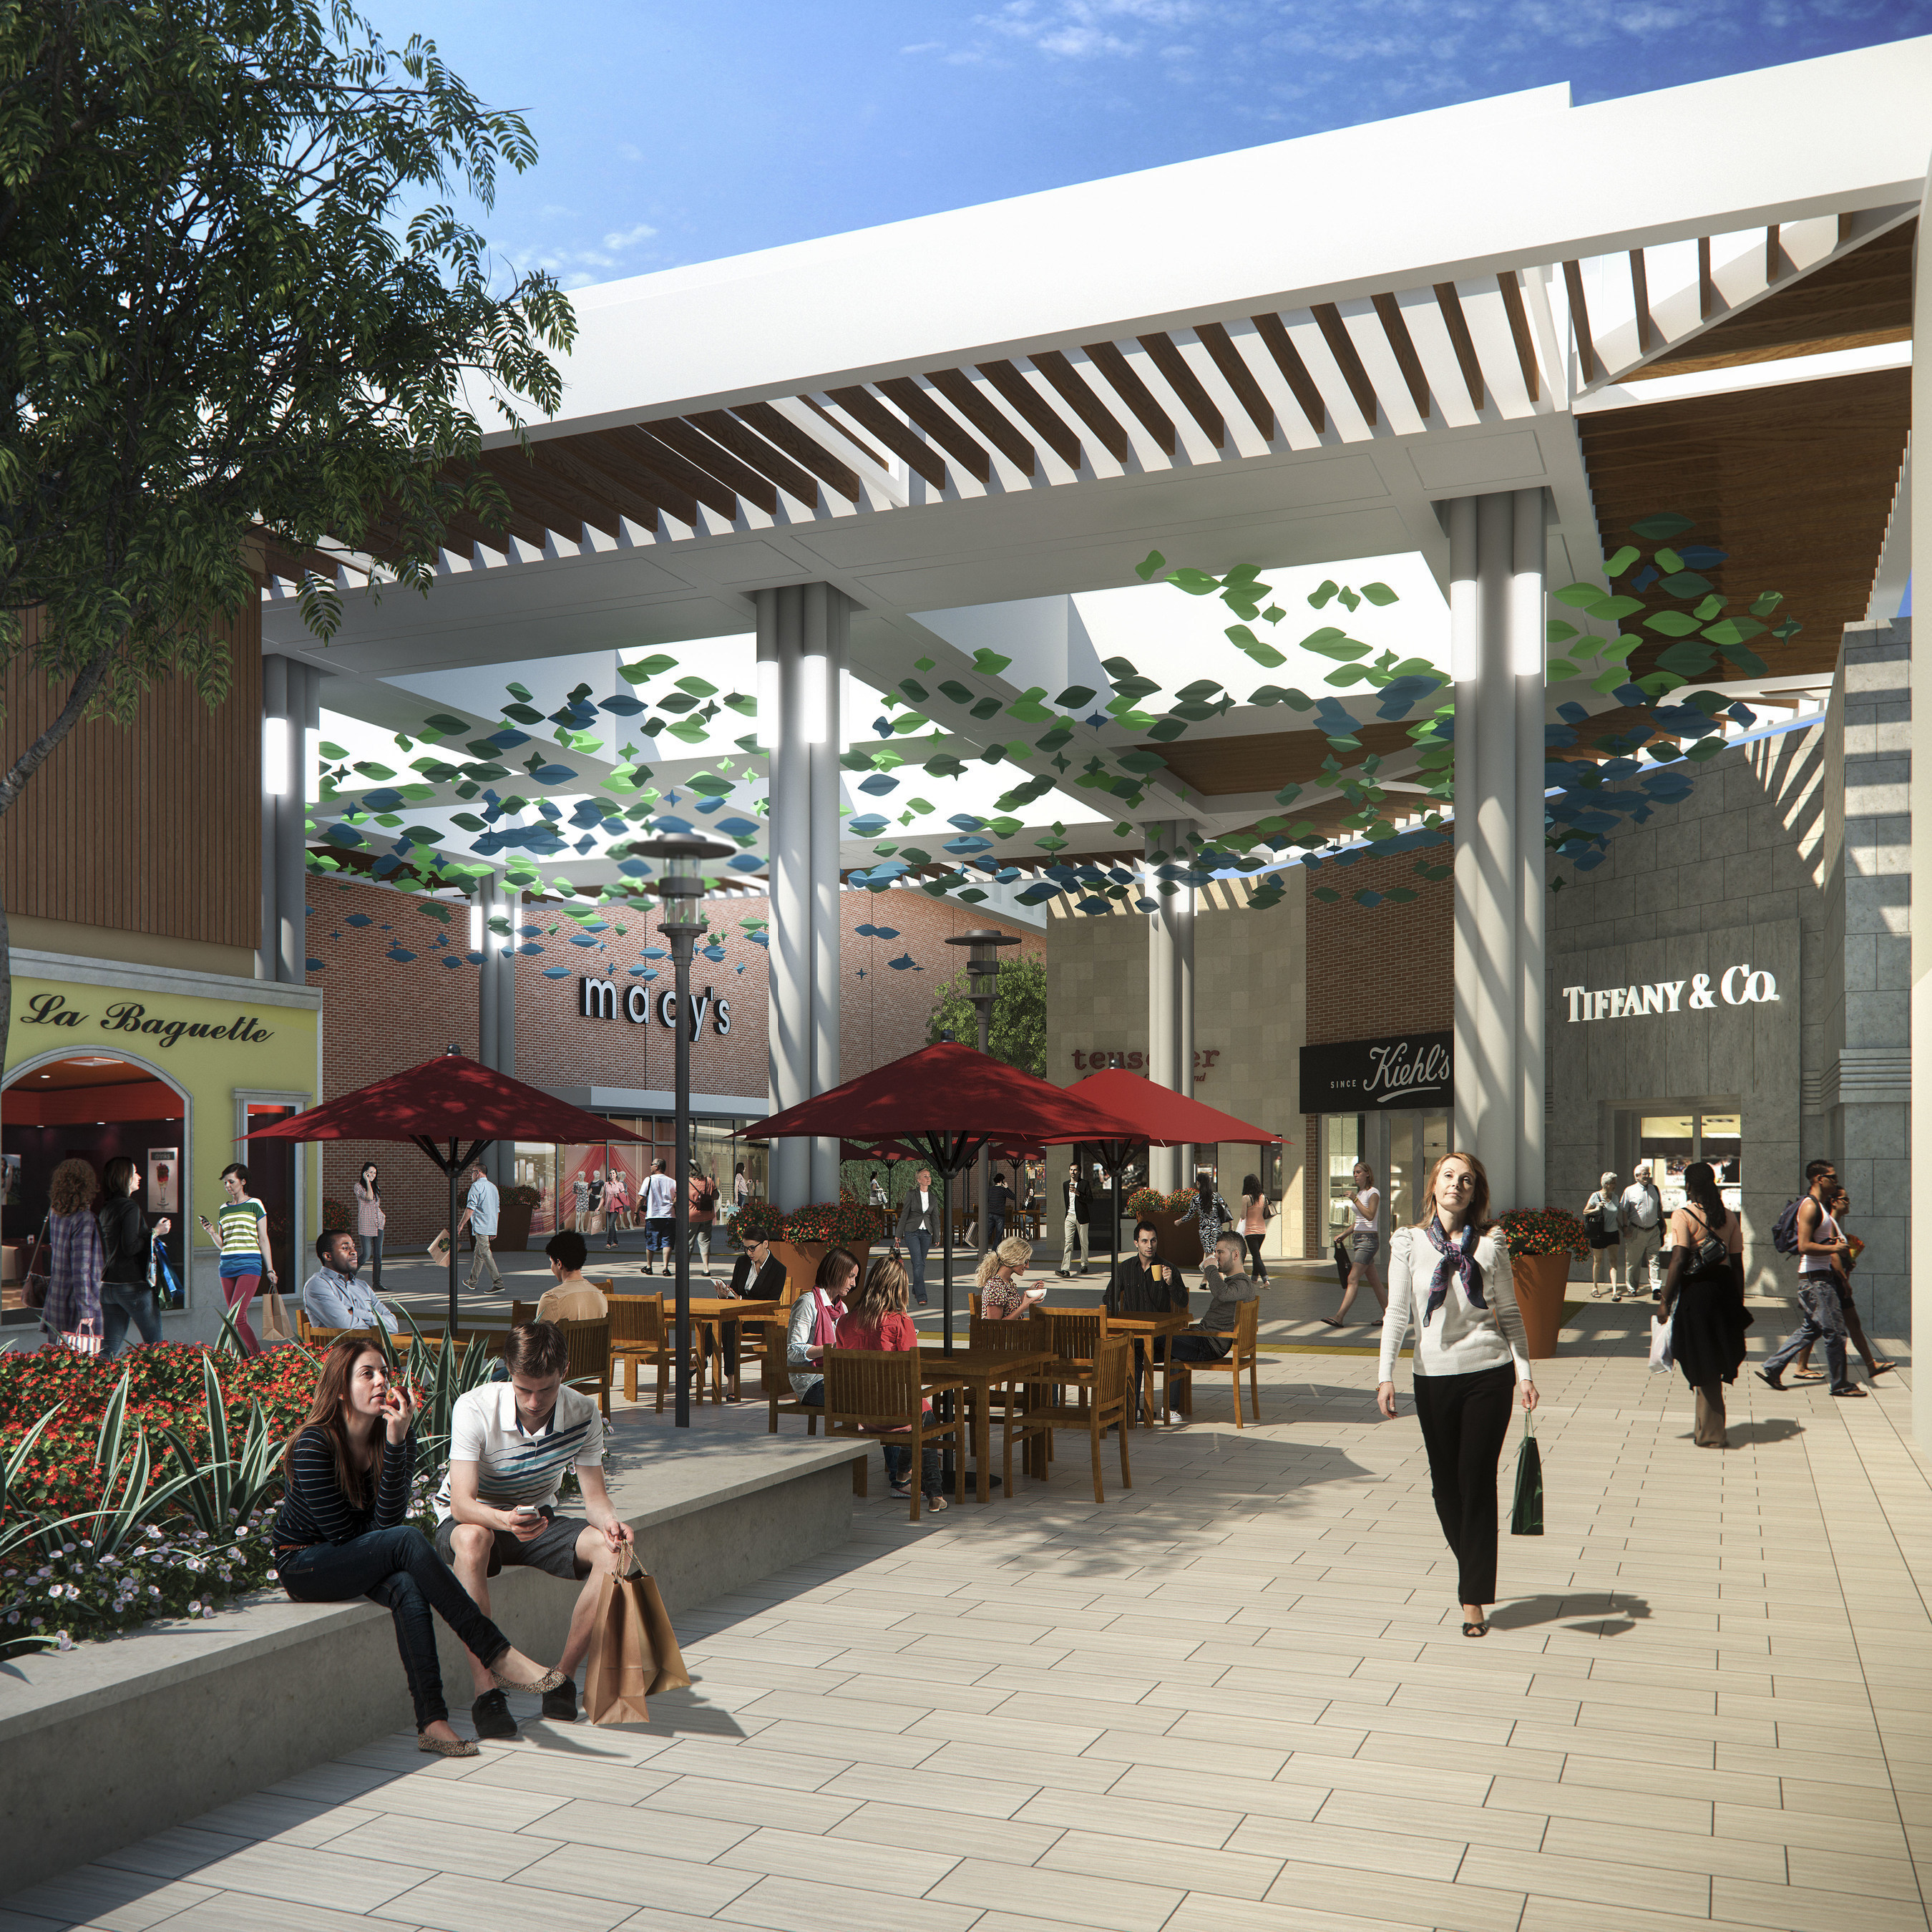 Stanford Shopping Center, celebrating its 60th anniversary in 2016, has undergone an extensive transformation.